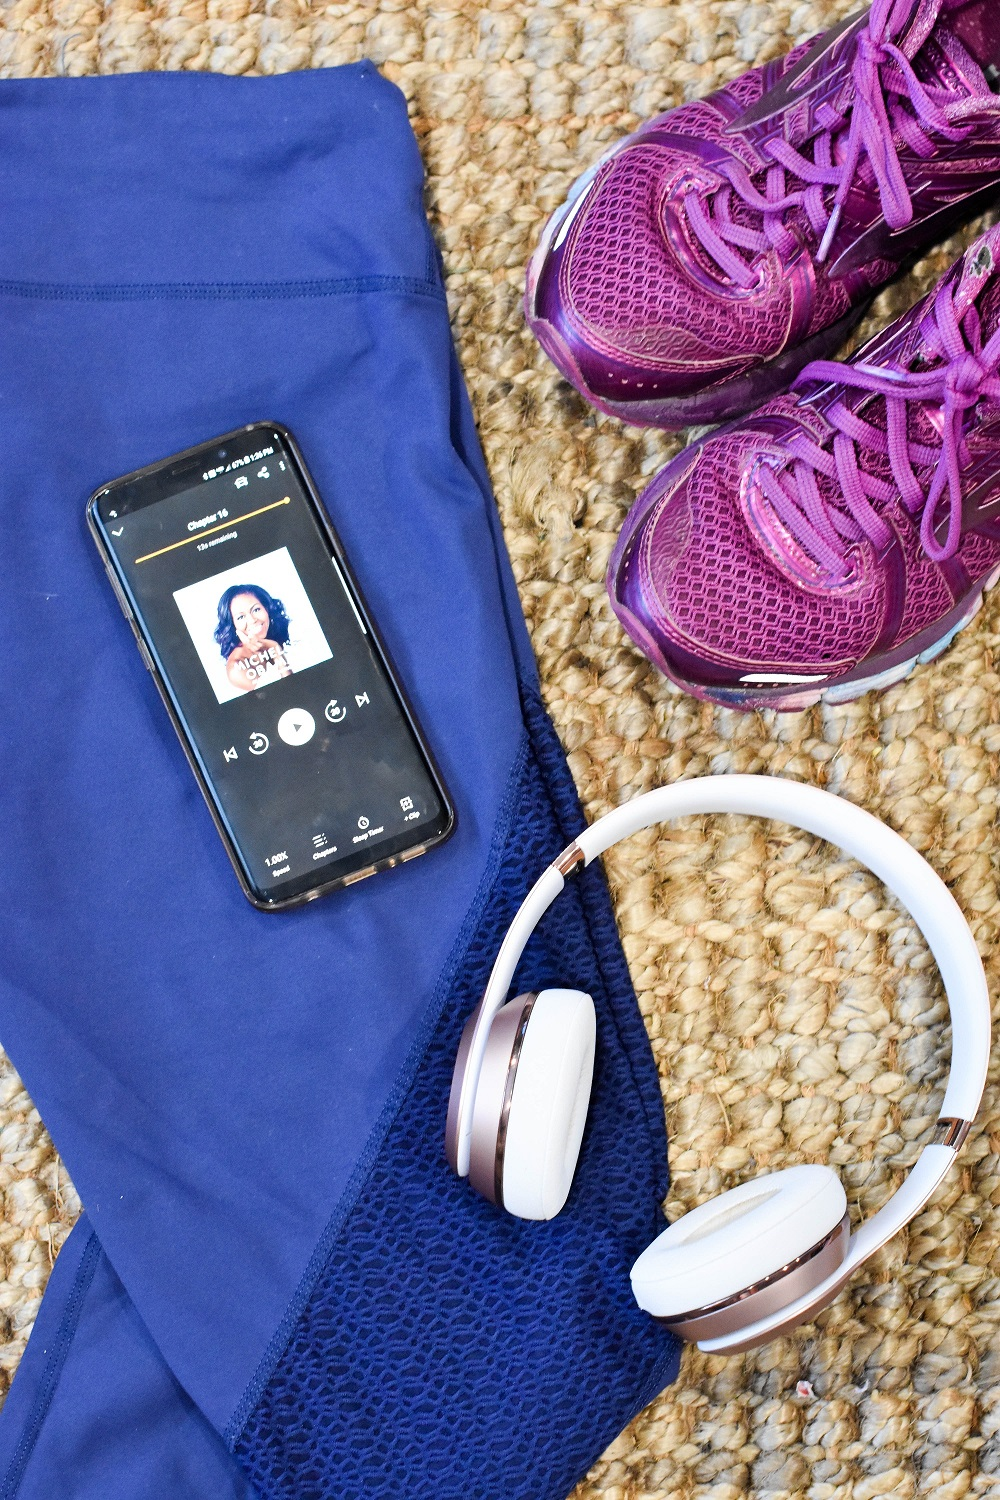 Healthy Fitness Habits for the New Year With Audible